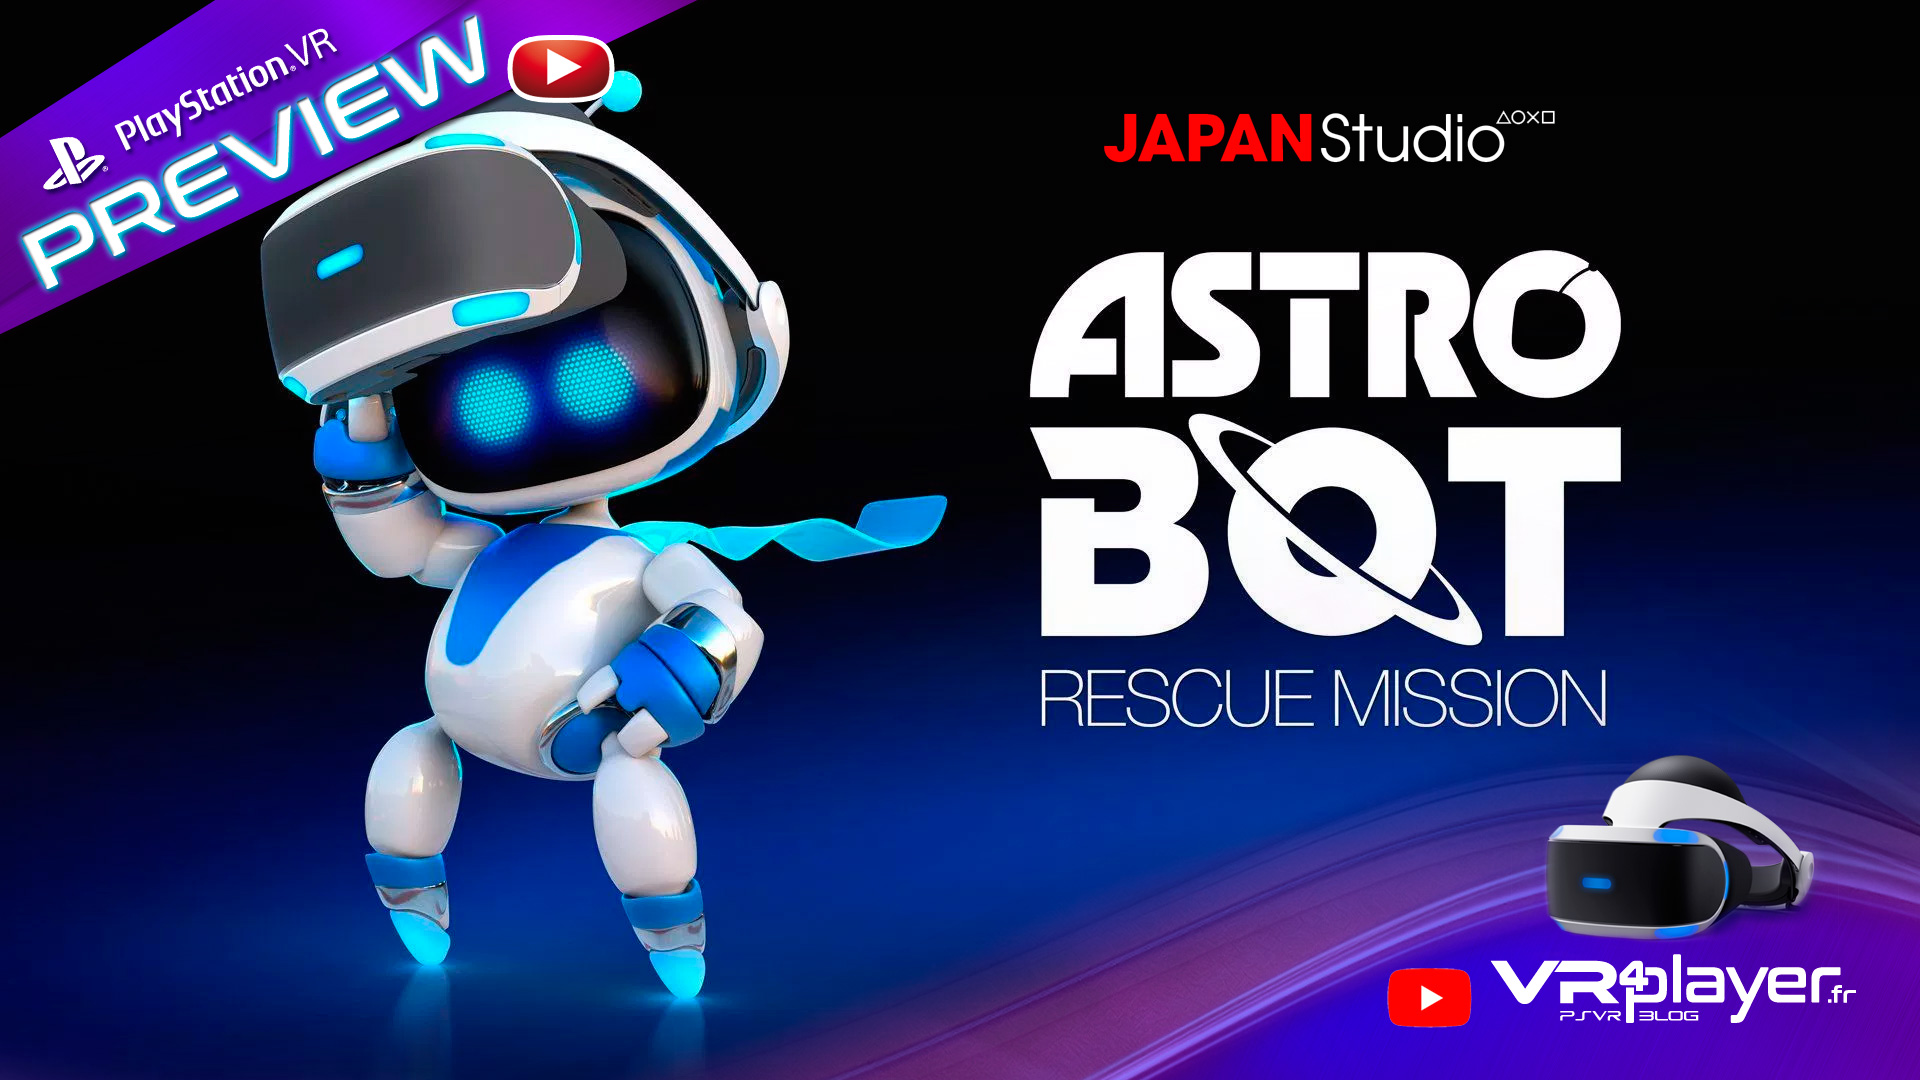 Astro Bot Preview du Hit VR4Player